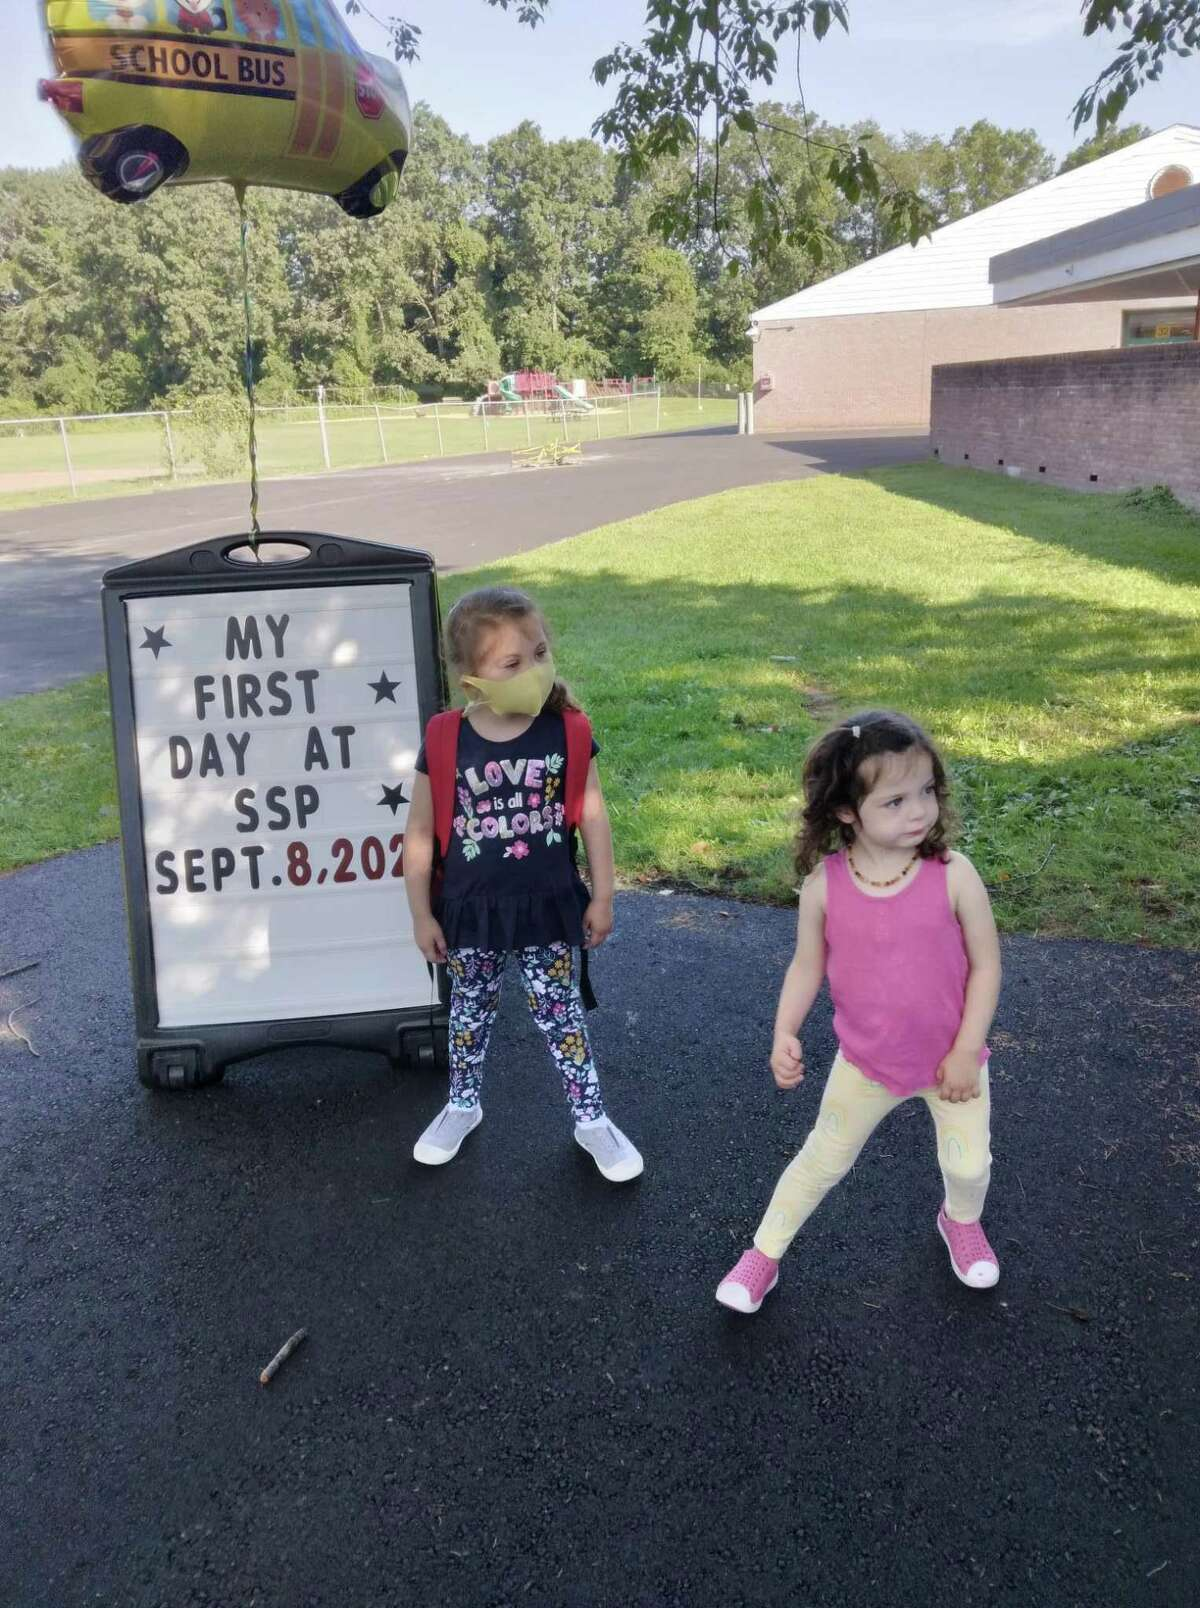 Dillon Untracht, 4, and Rebel Untracht, 2, pose for pictures outside Stepping Stones Preschool in Westport on the first day of school, Sept. 8, 2021.